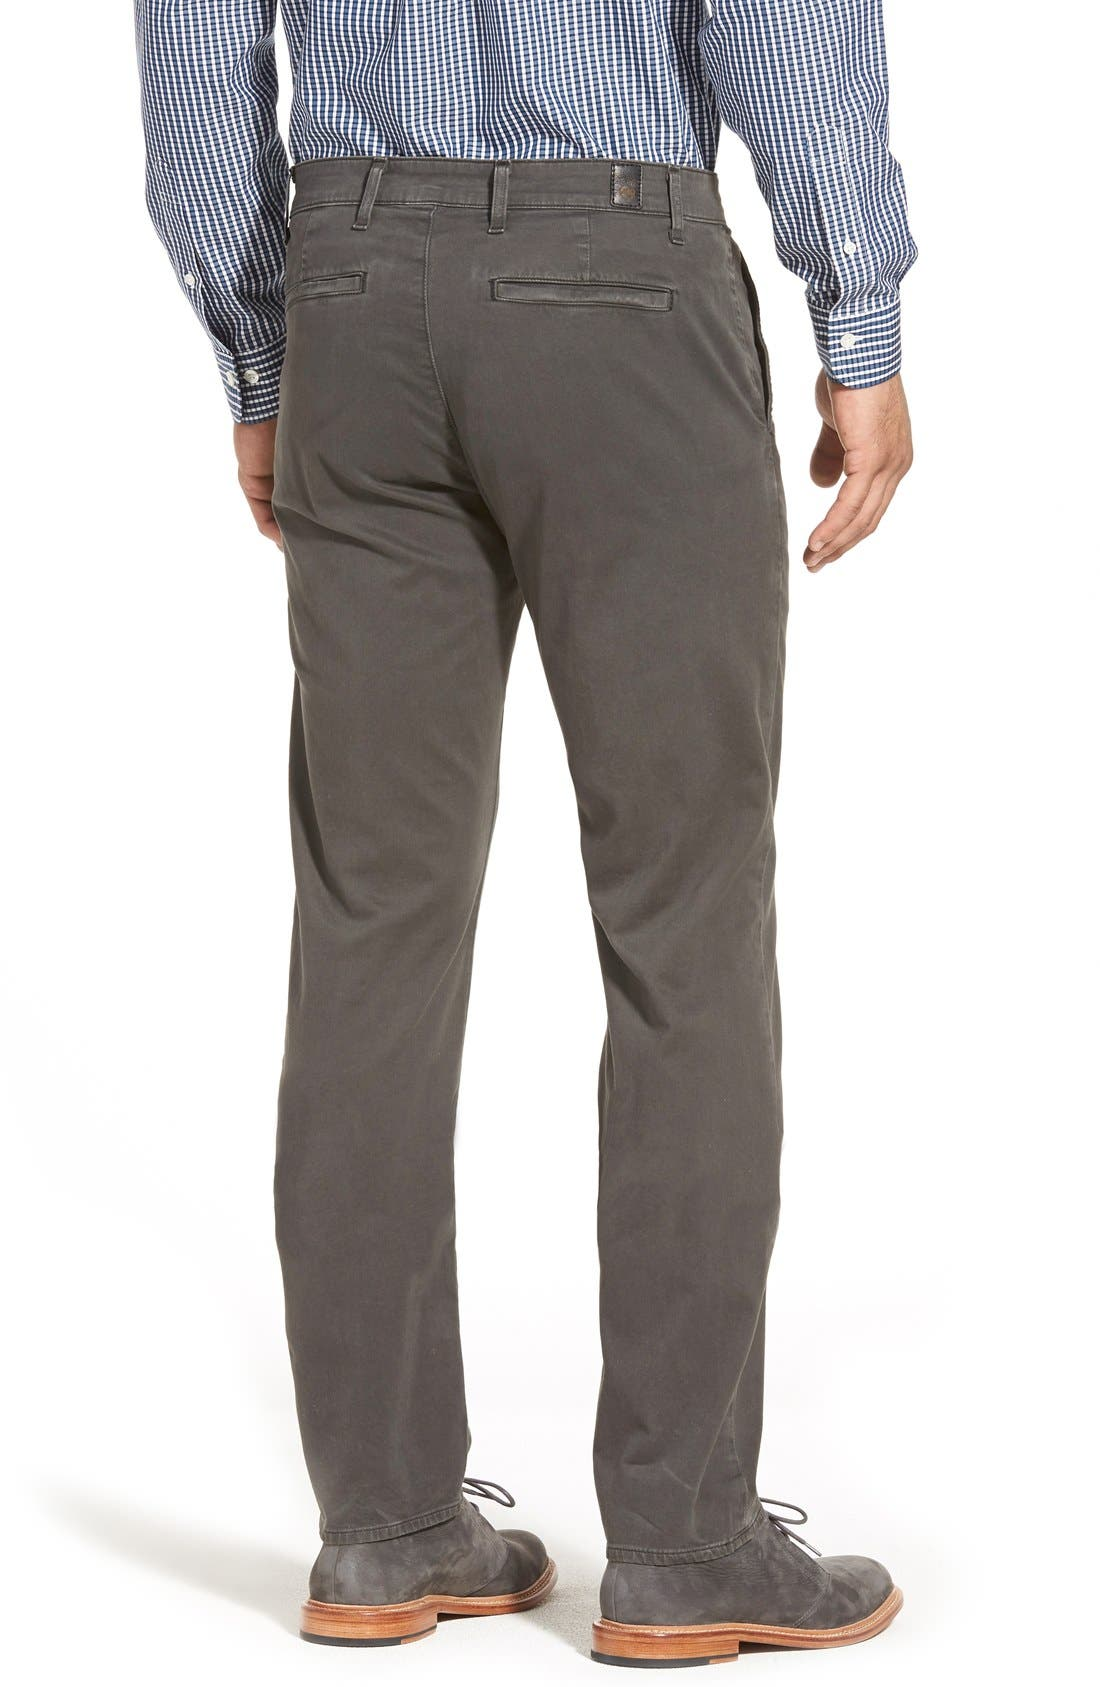 'The Lux' Tailored Straight Leg Chinos,                             Alternate thumbnail 21, color,